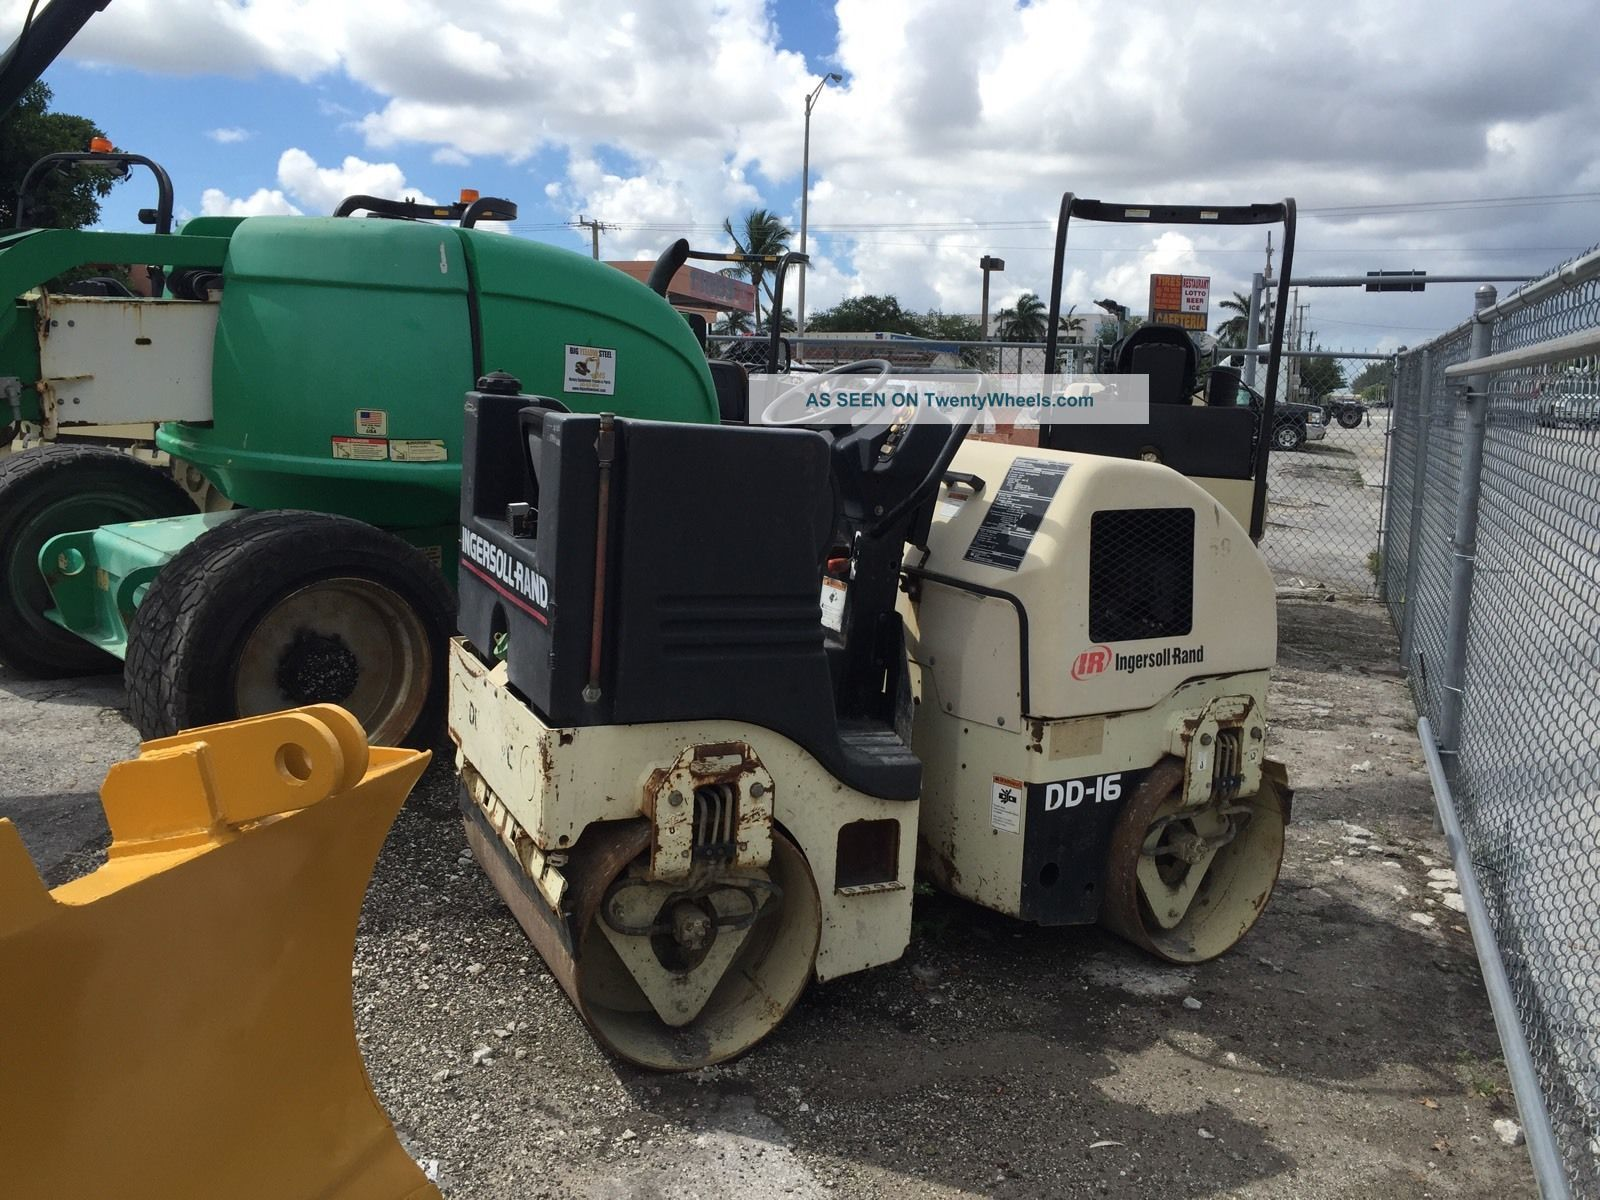 2004 Ingersoll - Rand Dd16 Double Drum Roller Compactors & Rollers - Riding photo